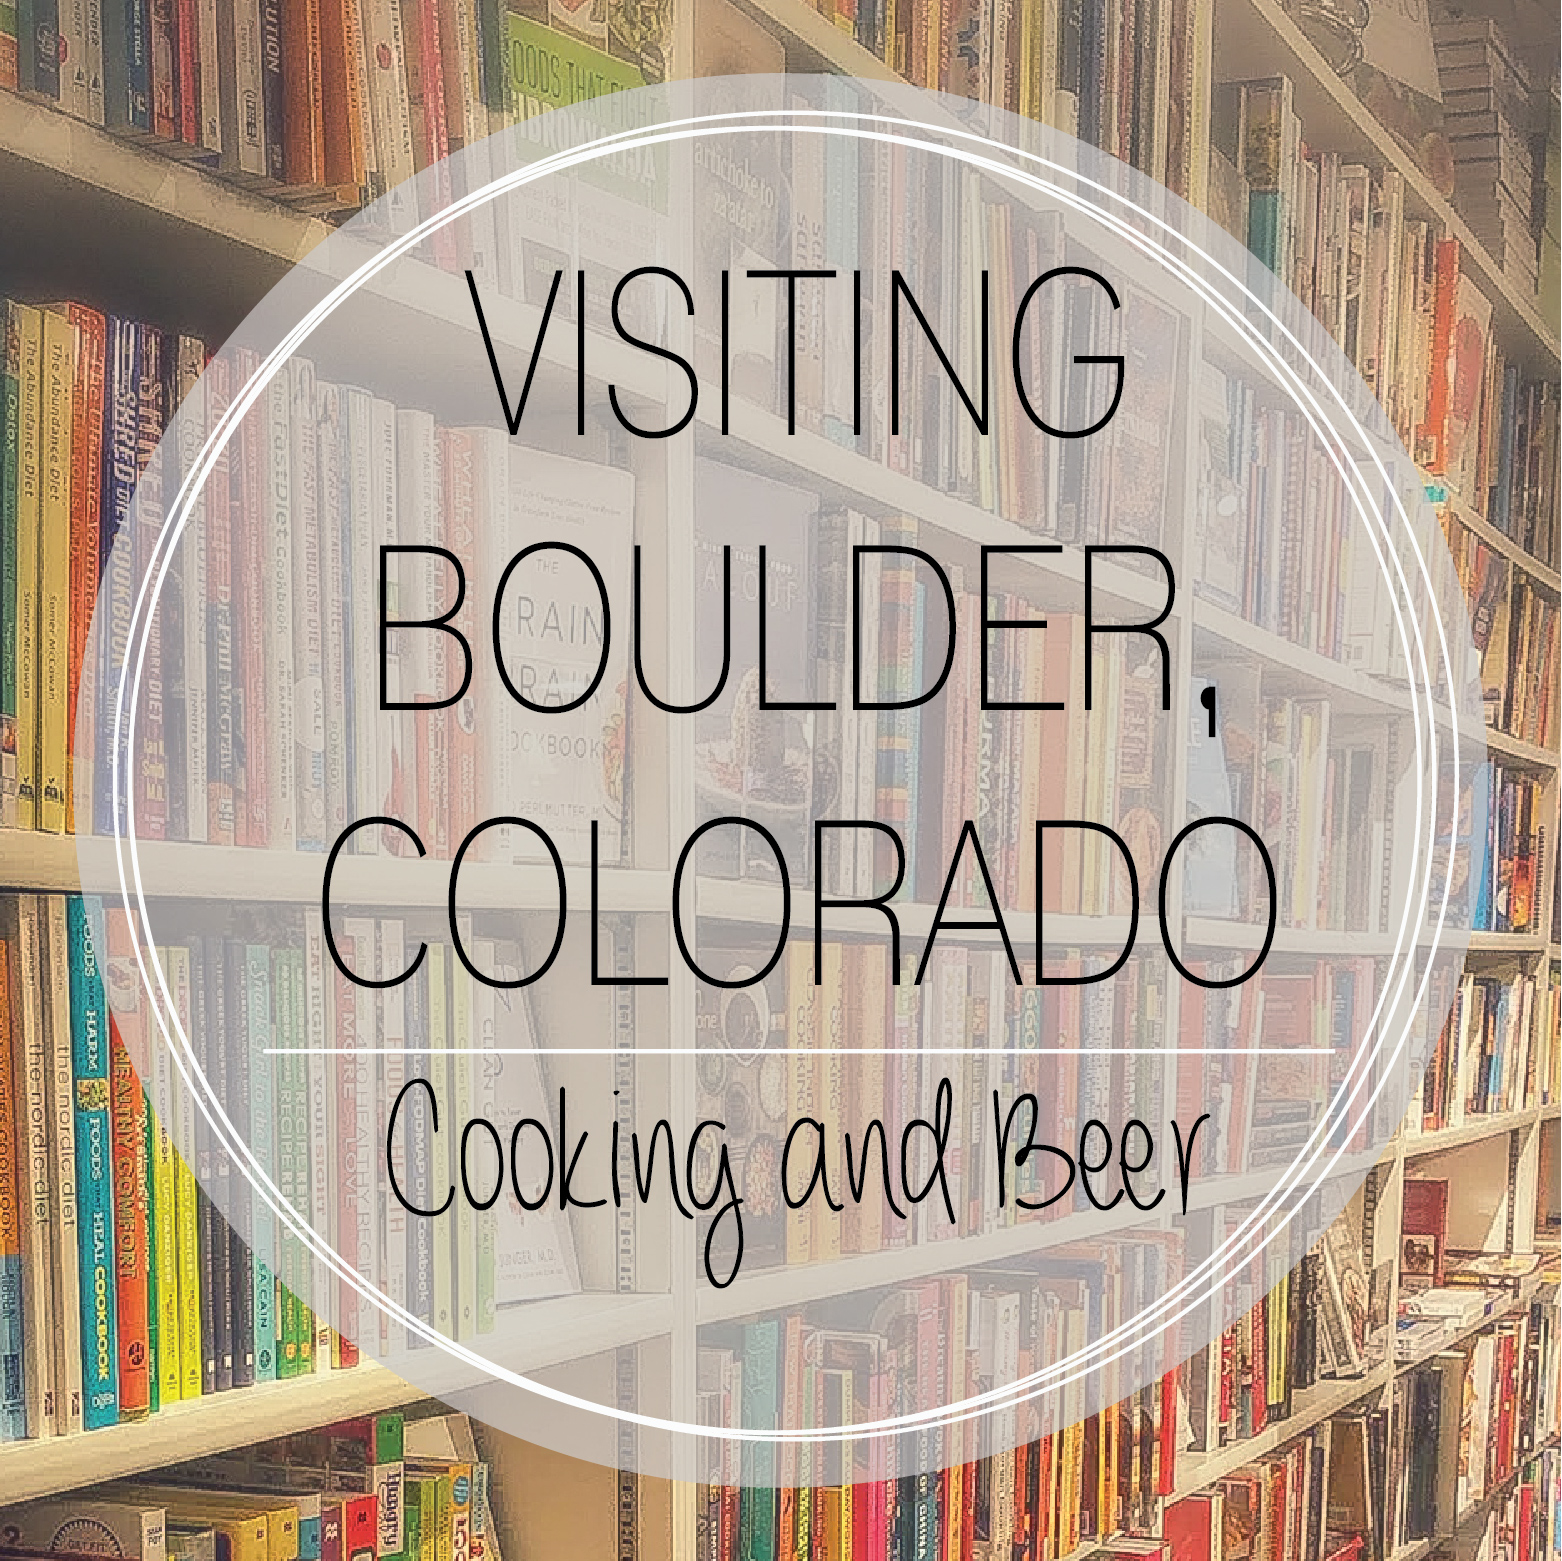 Discovering Boulder, Colorado: a look into where to eat, where to shop and where to visit on a budget provided by Discover it® Miles! | www.cookingandbeer.com